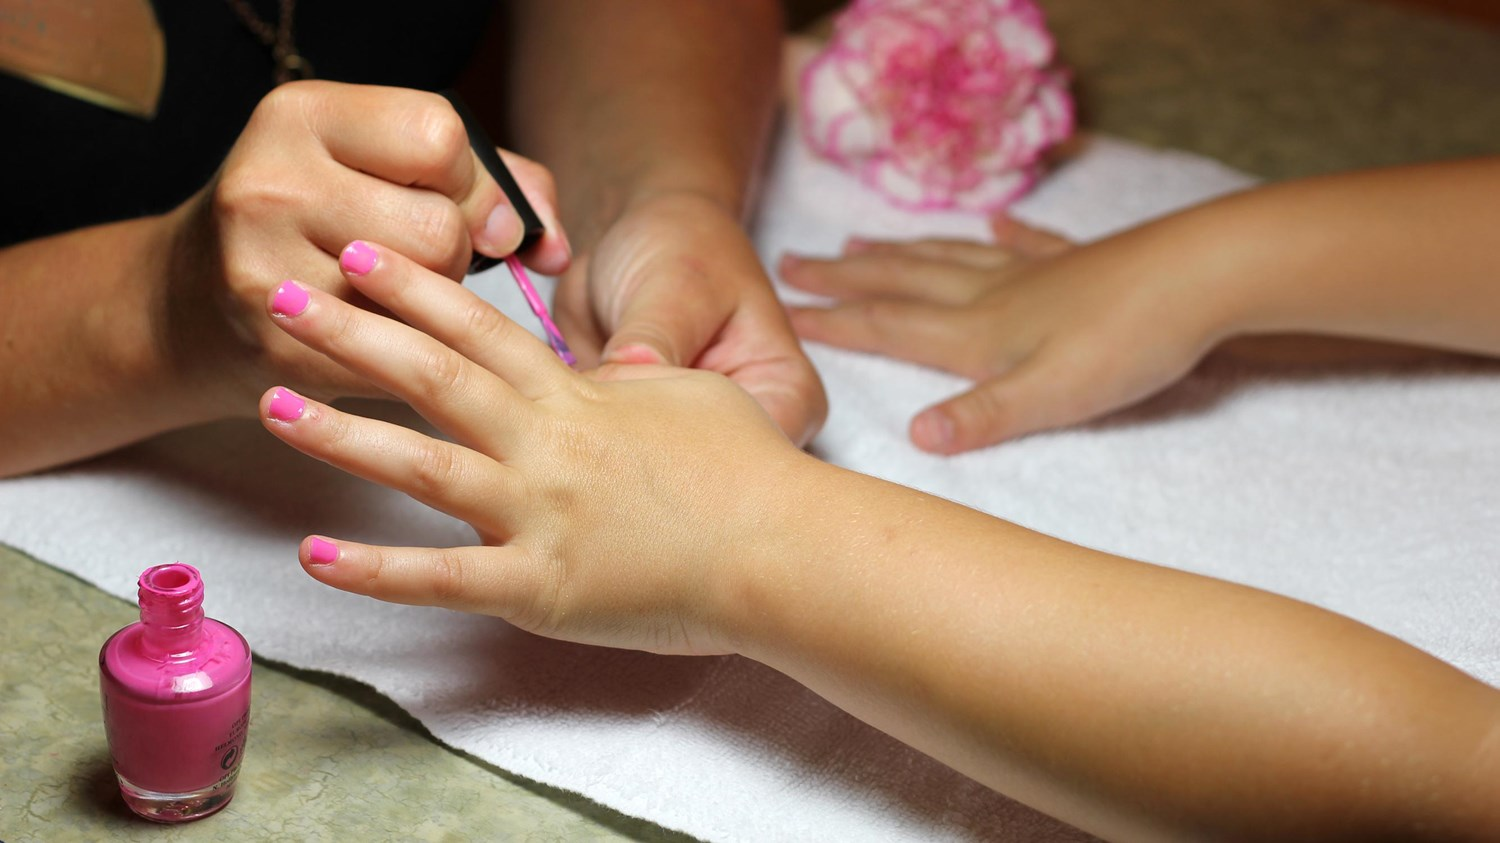 A young girl getting her nails done